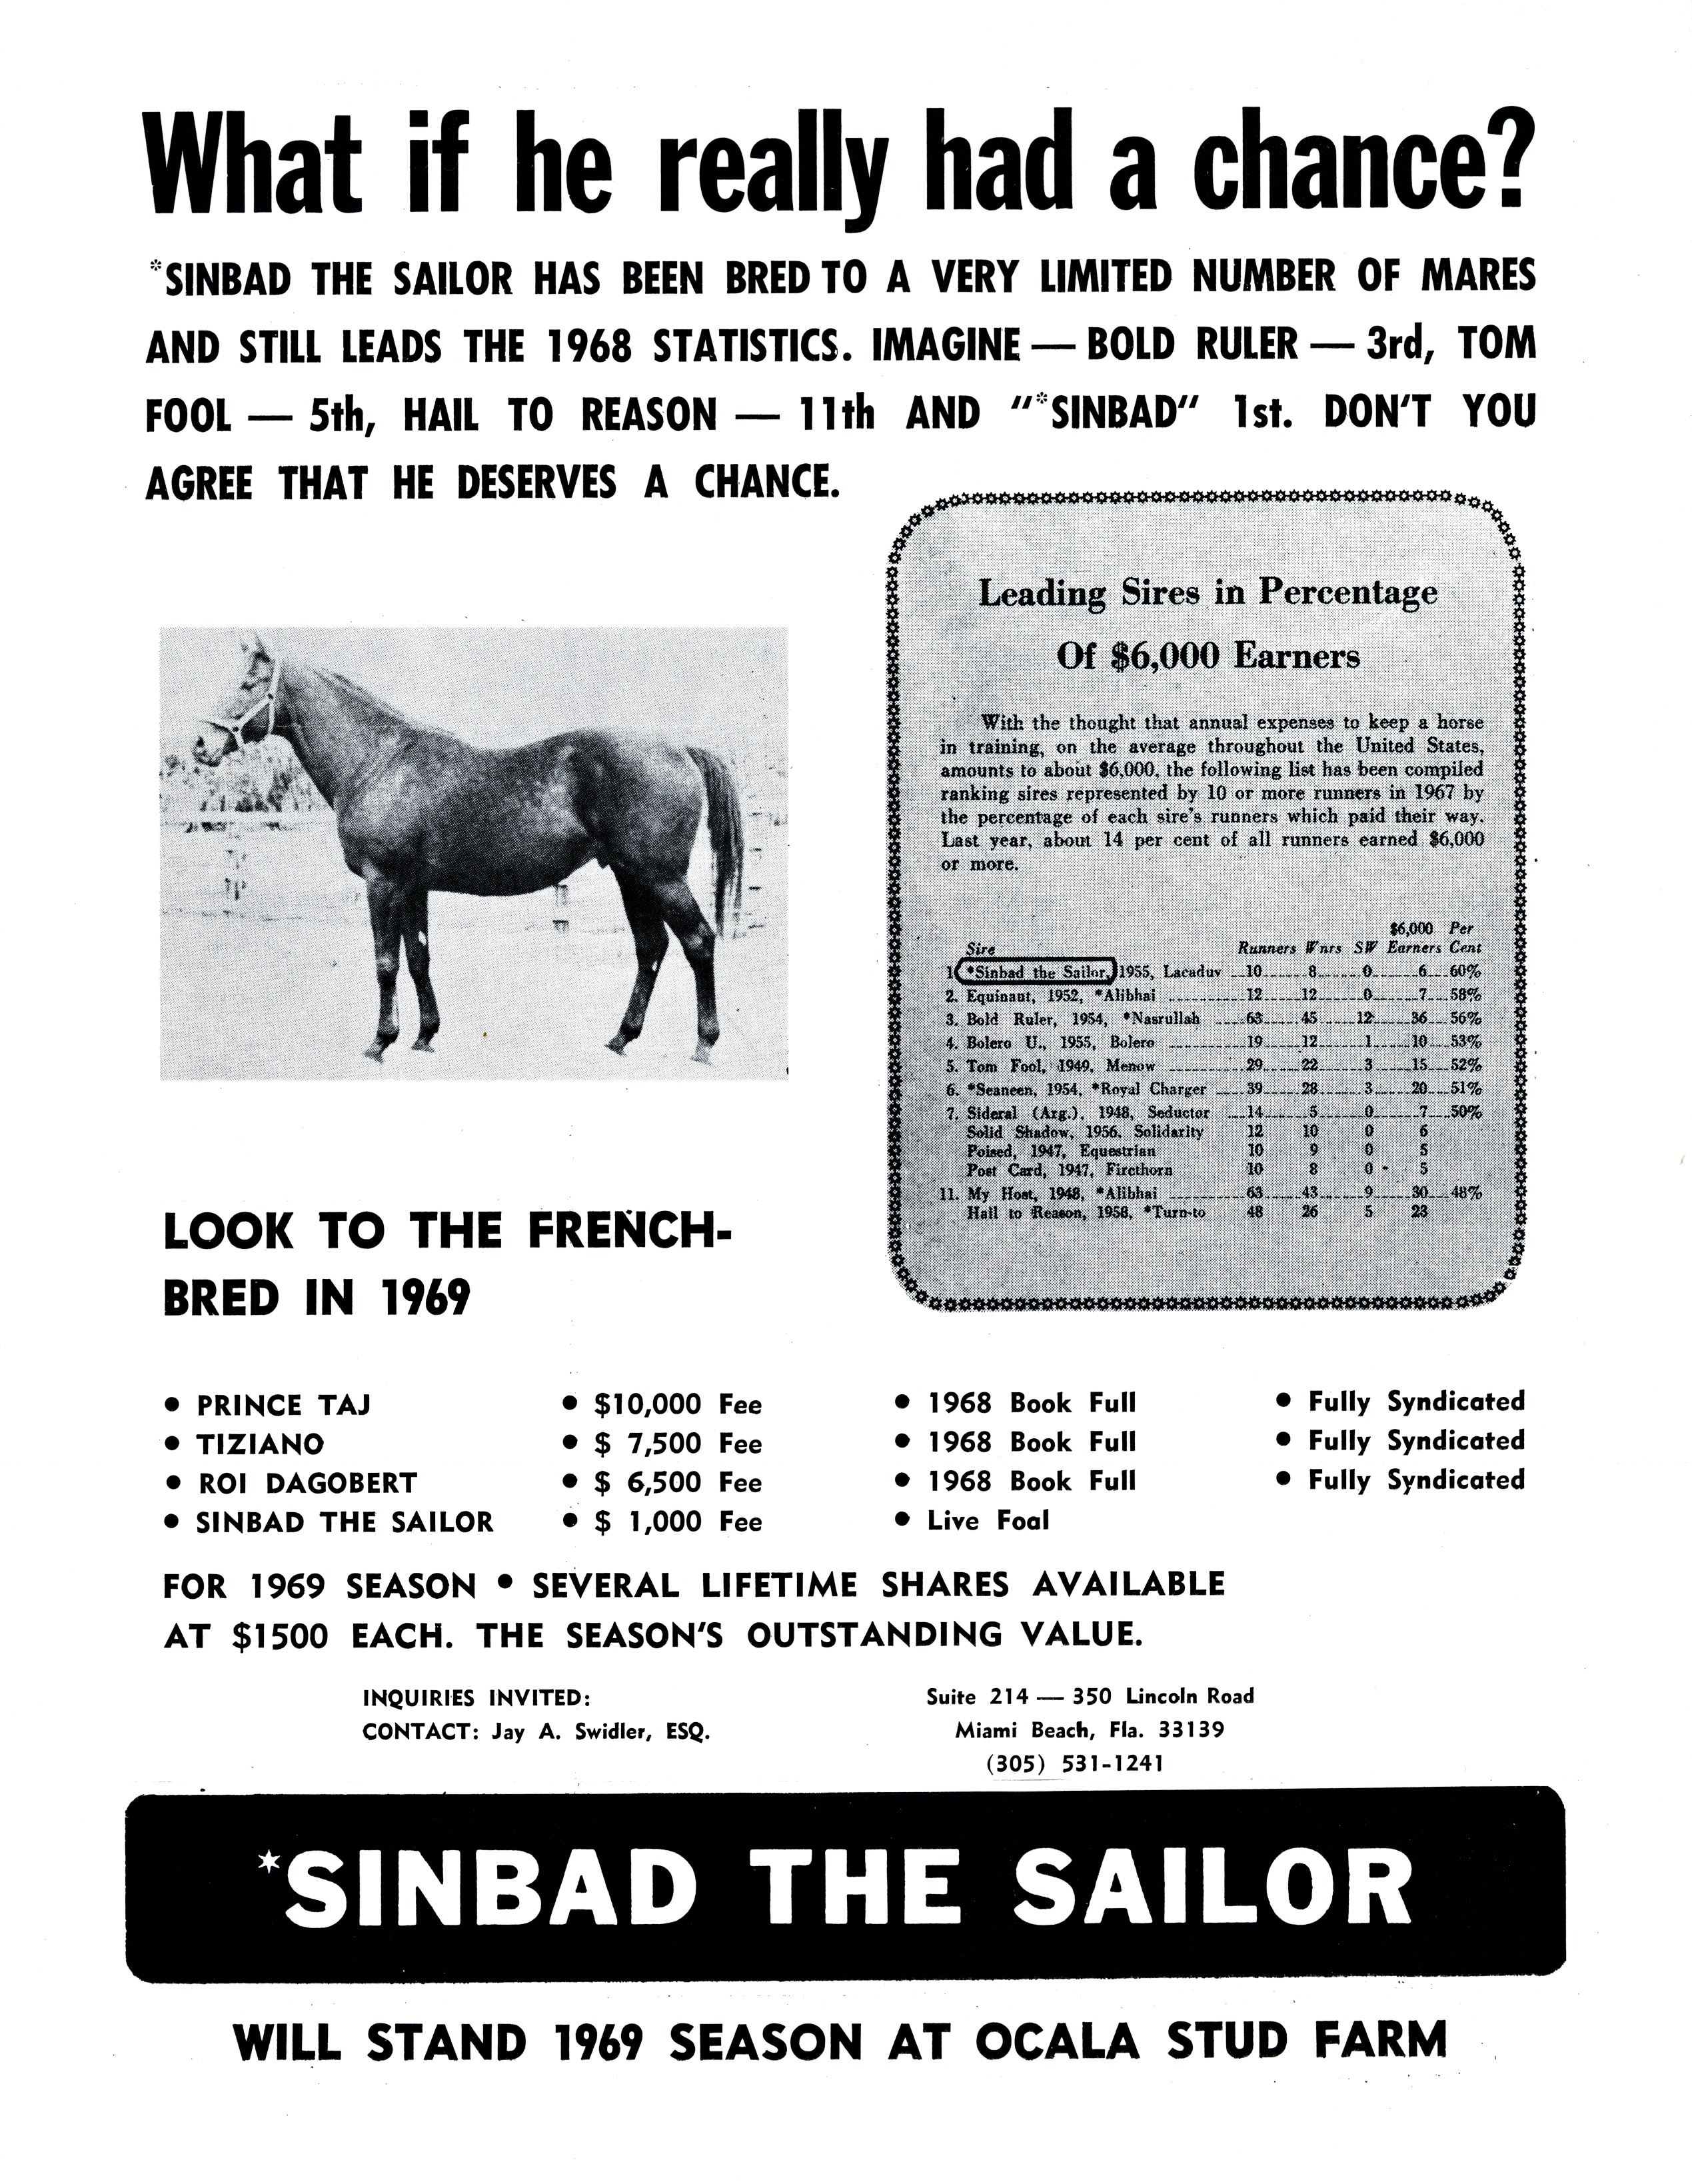 What if he really had a chance? Sinbad the Sailor.